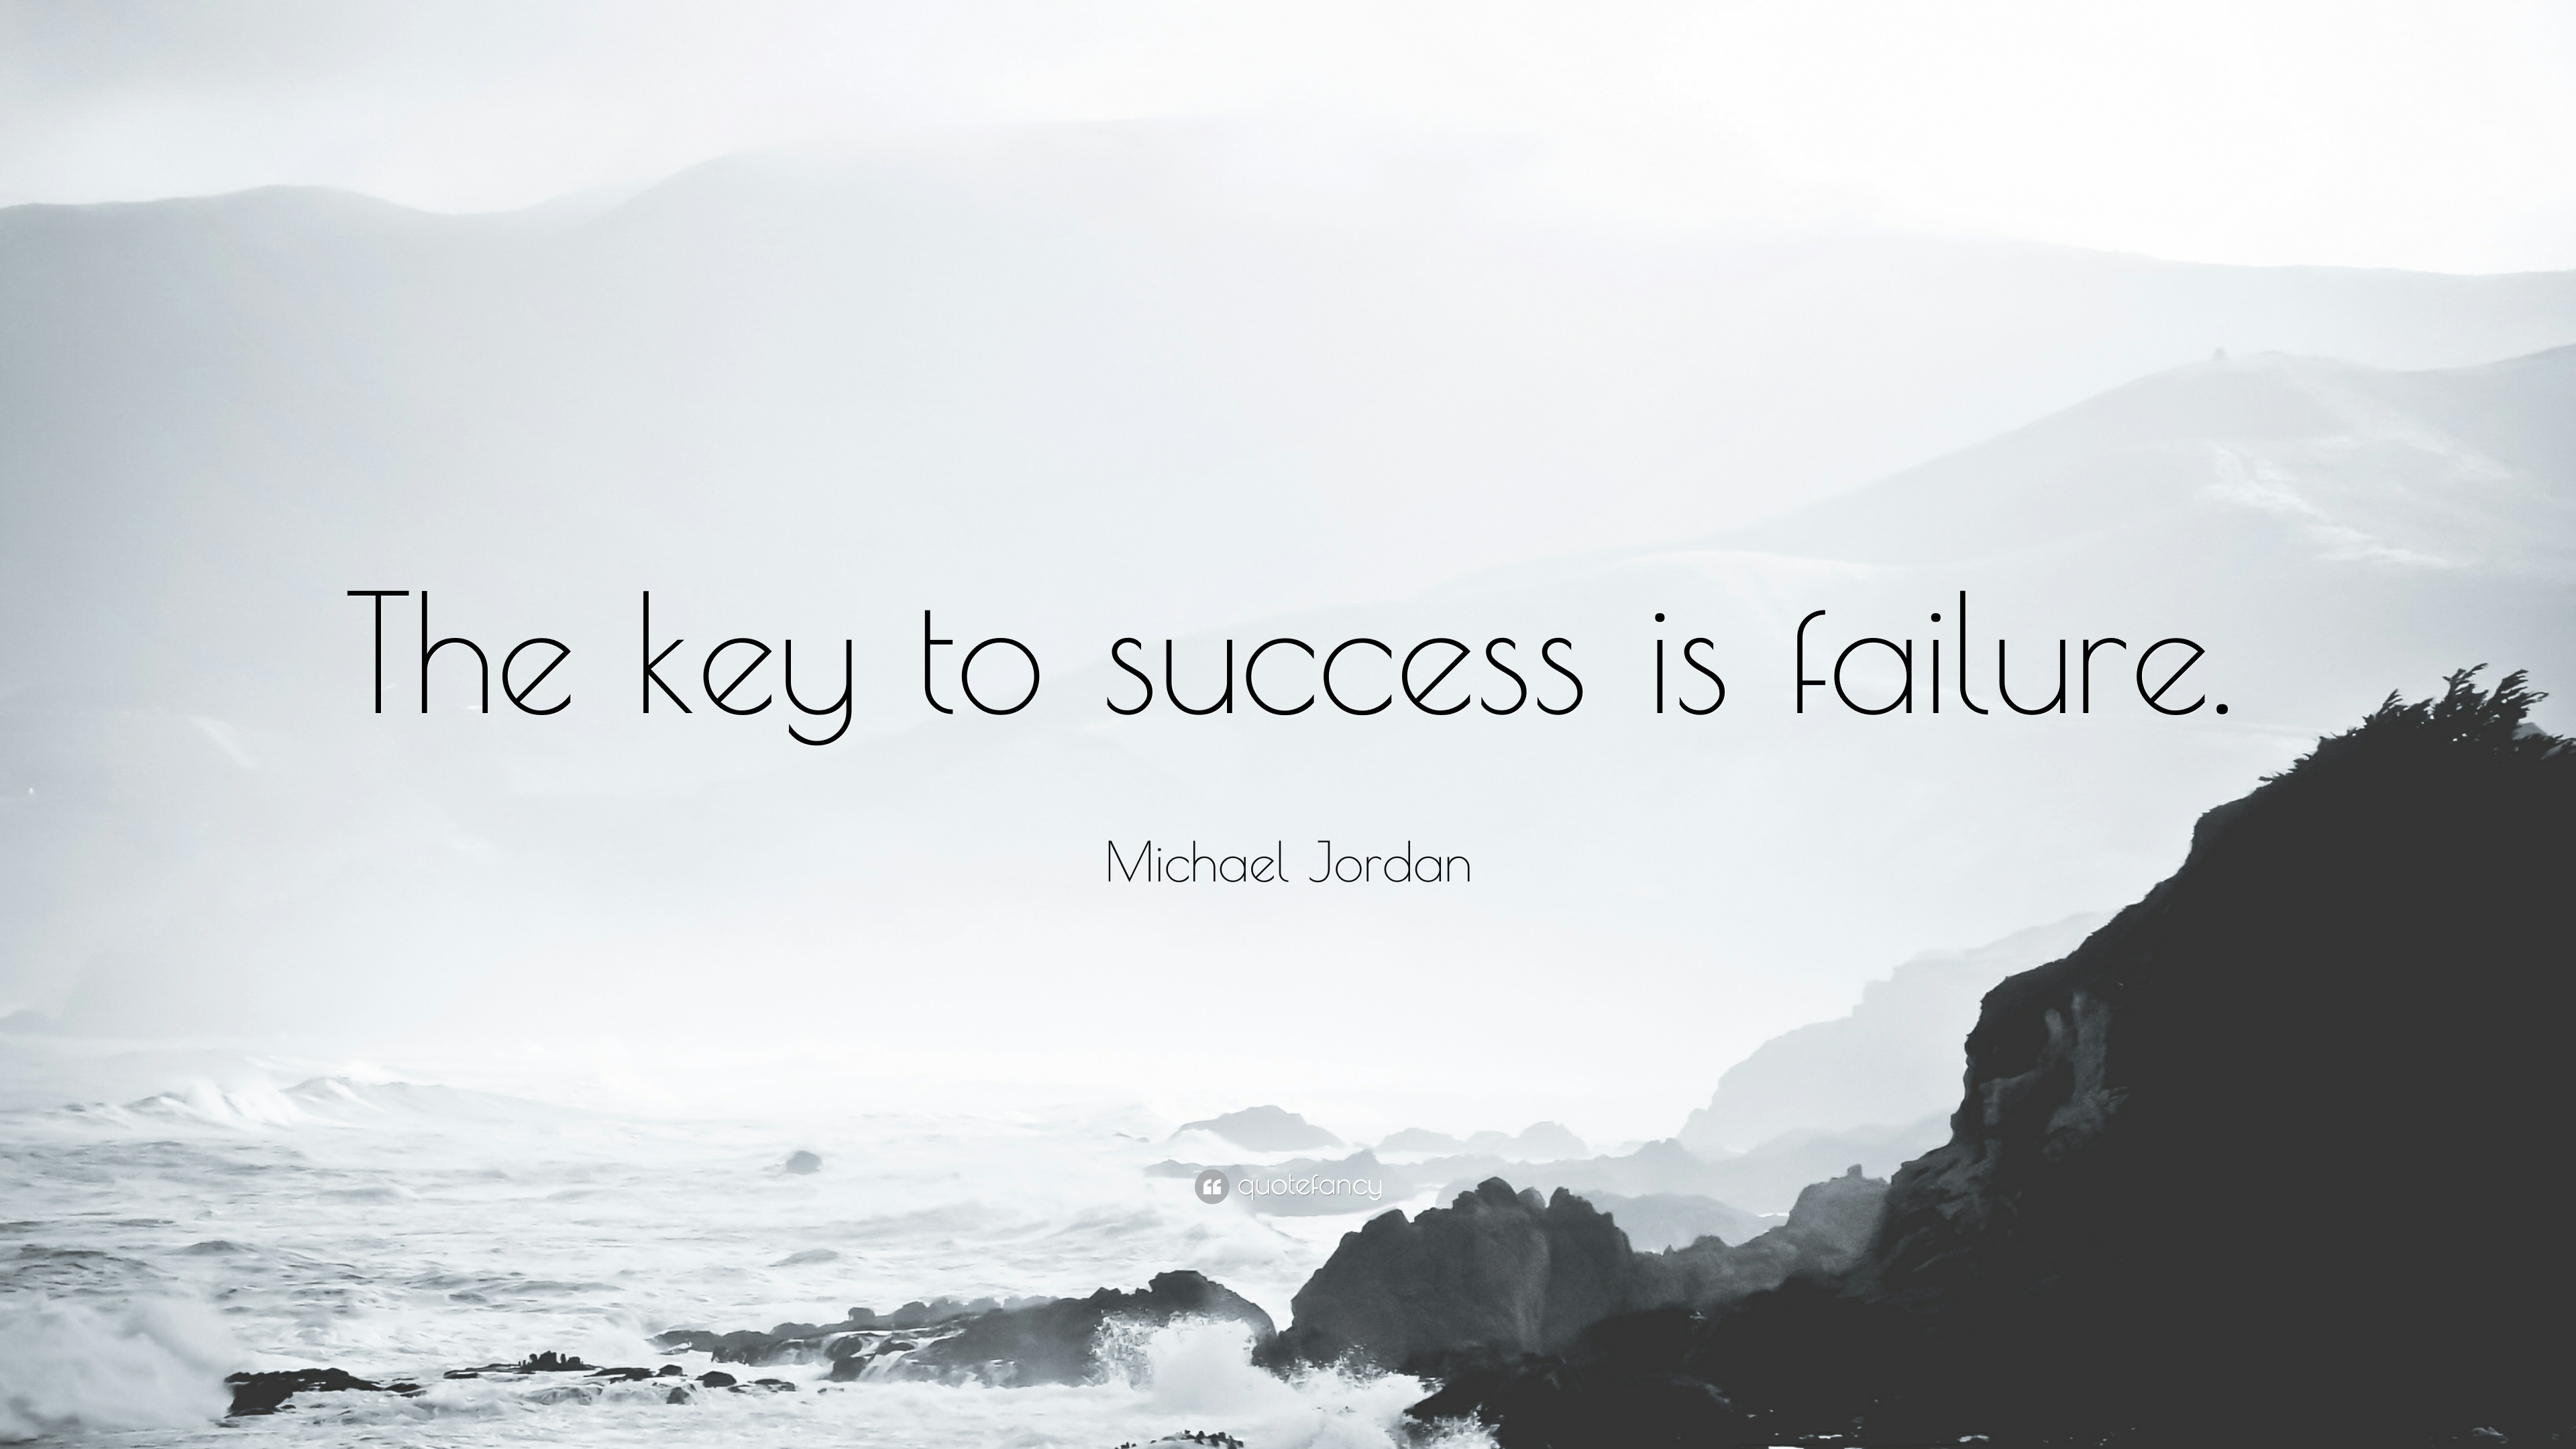 michael quote the key to success is failure 5 michael quote the key to success is failure